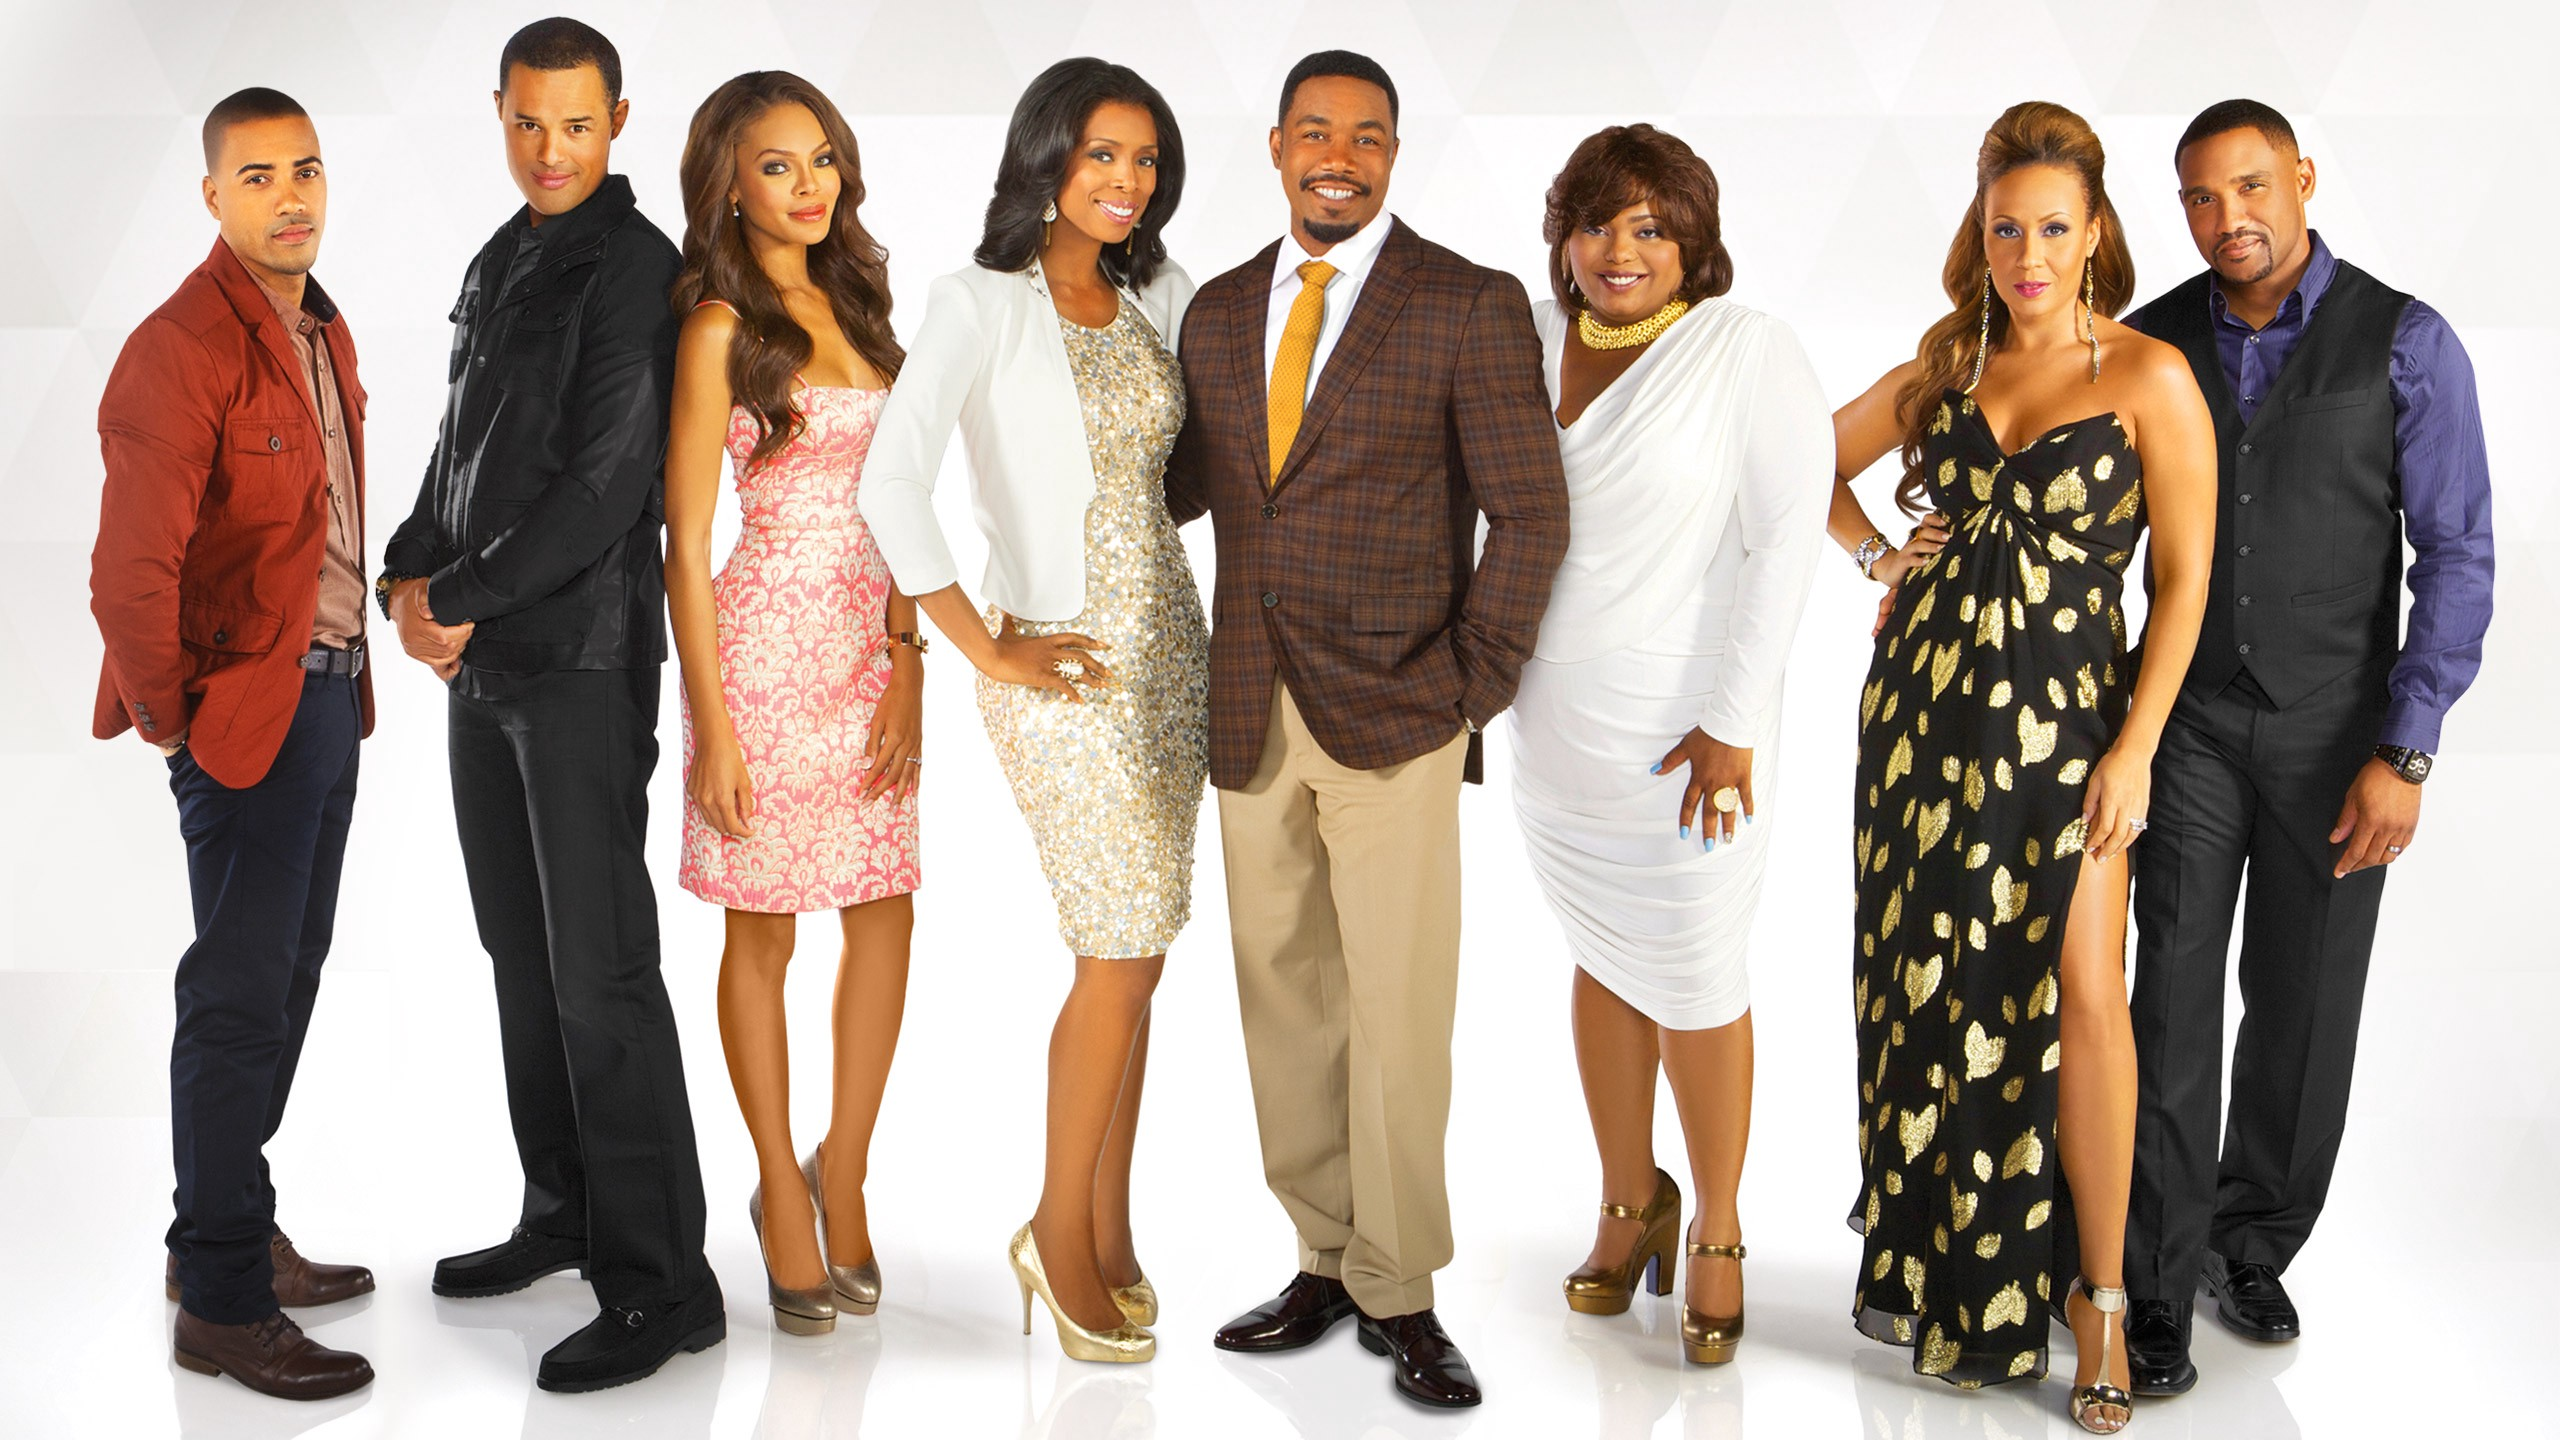 tyler perry for better or worse season 1 free download